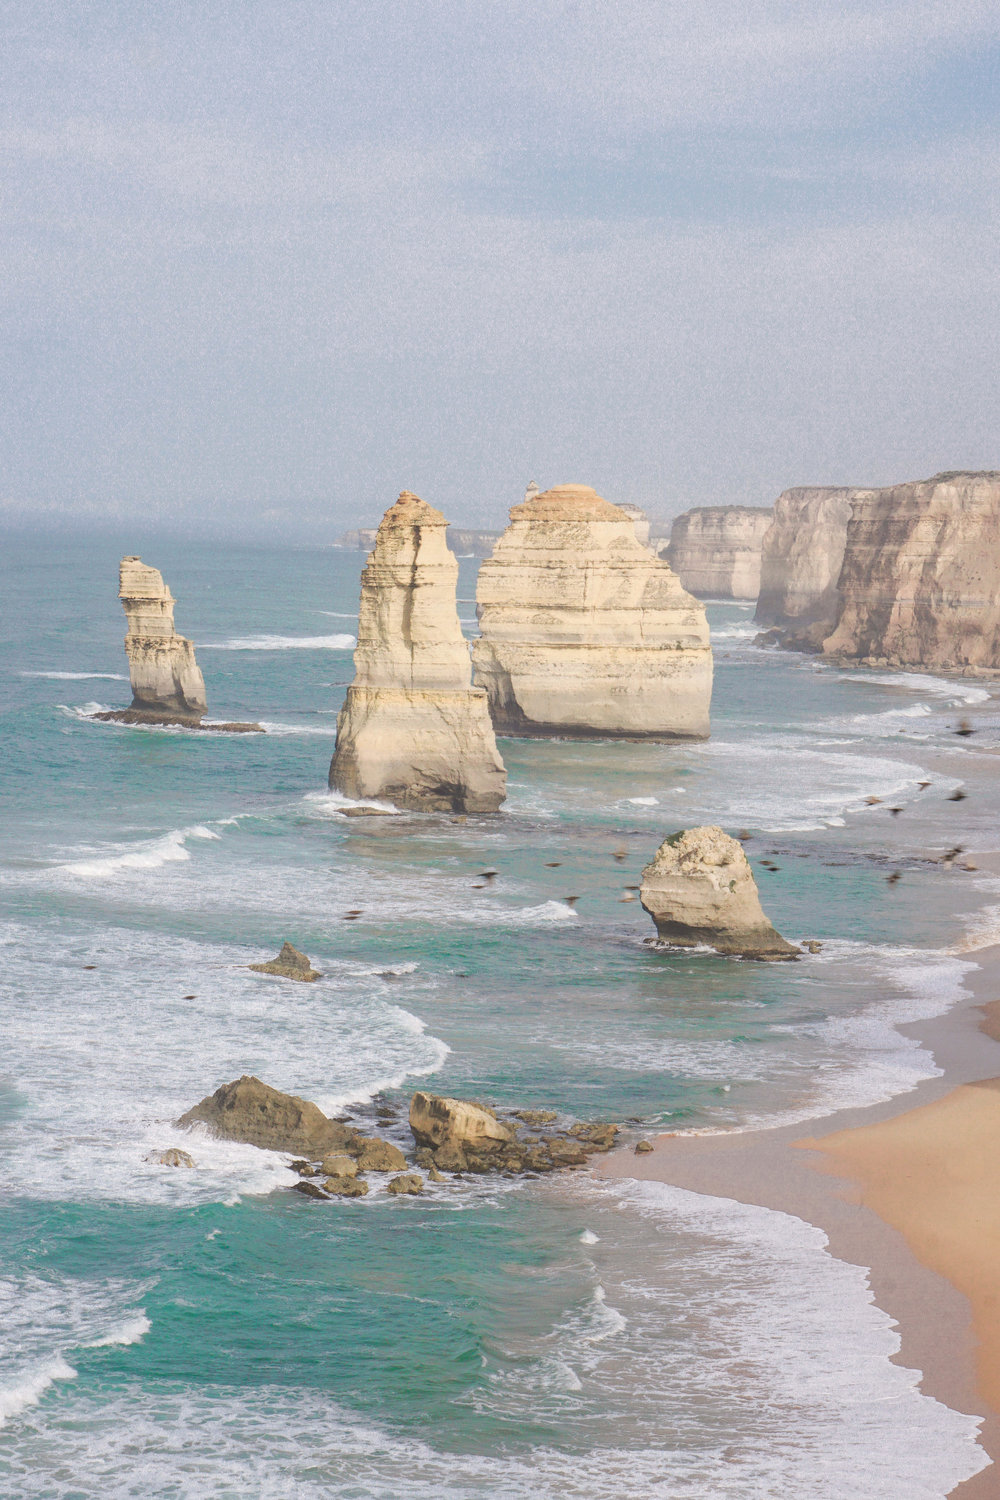 Australia - Great Ocean Road - Twelve Apostles